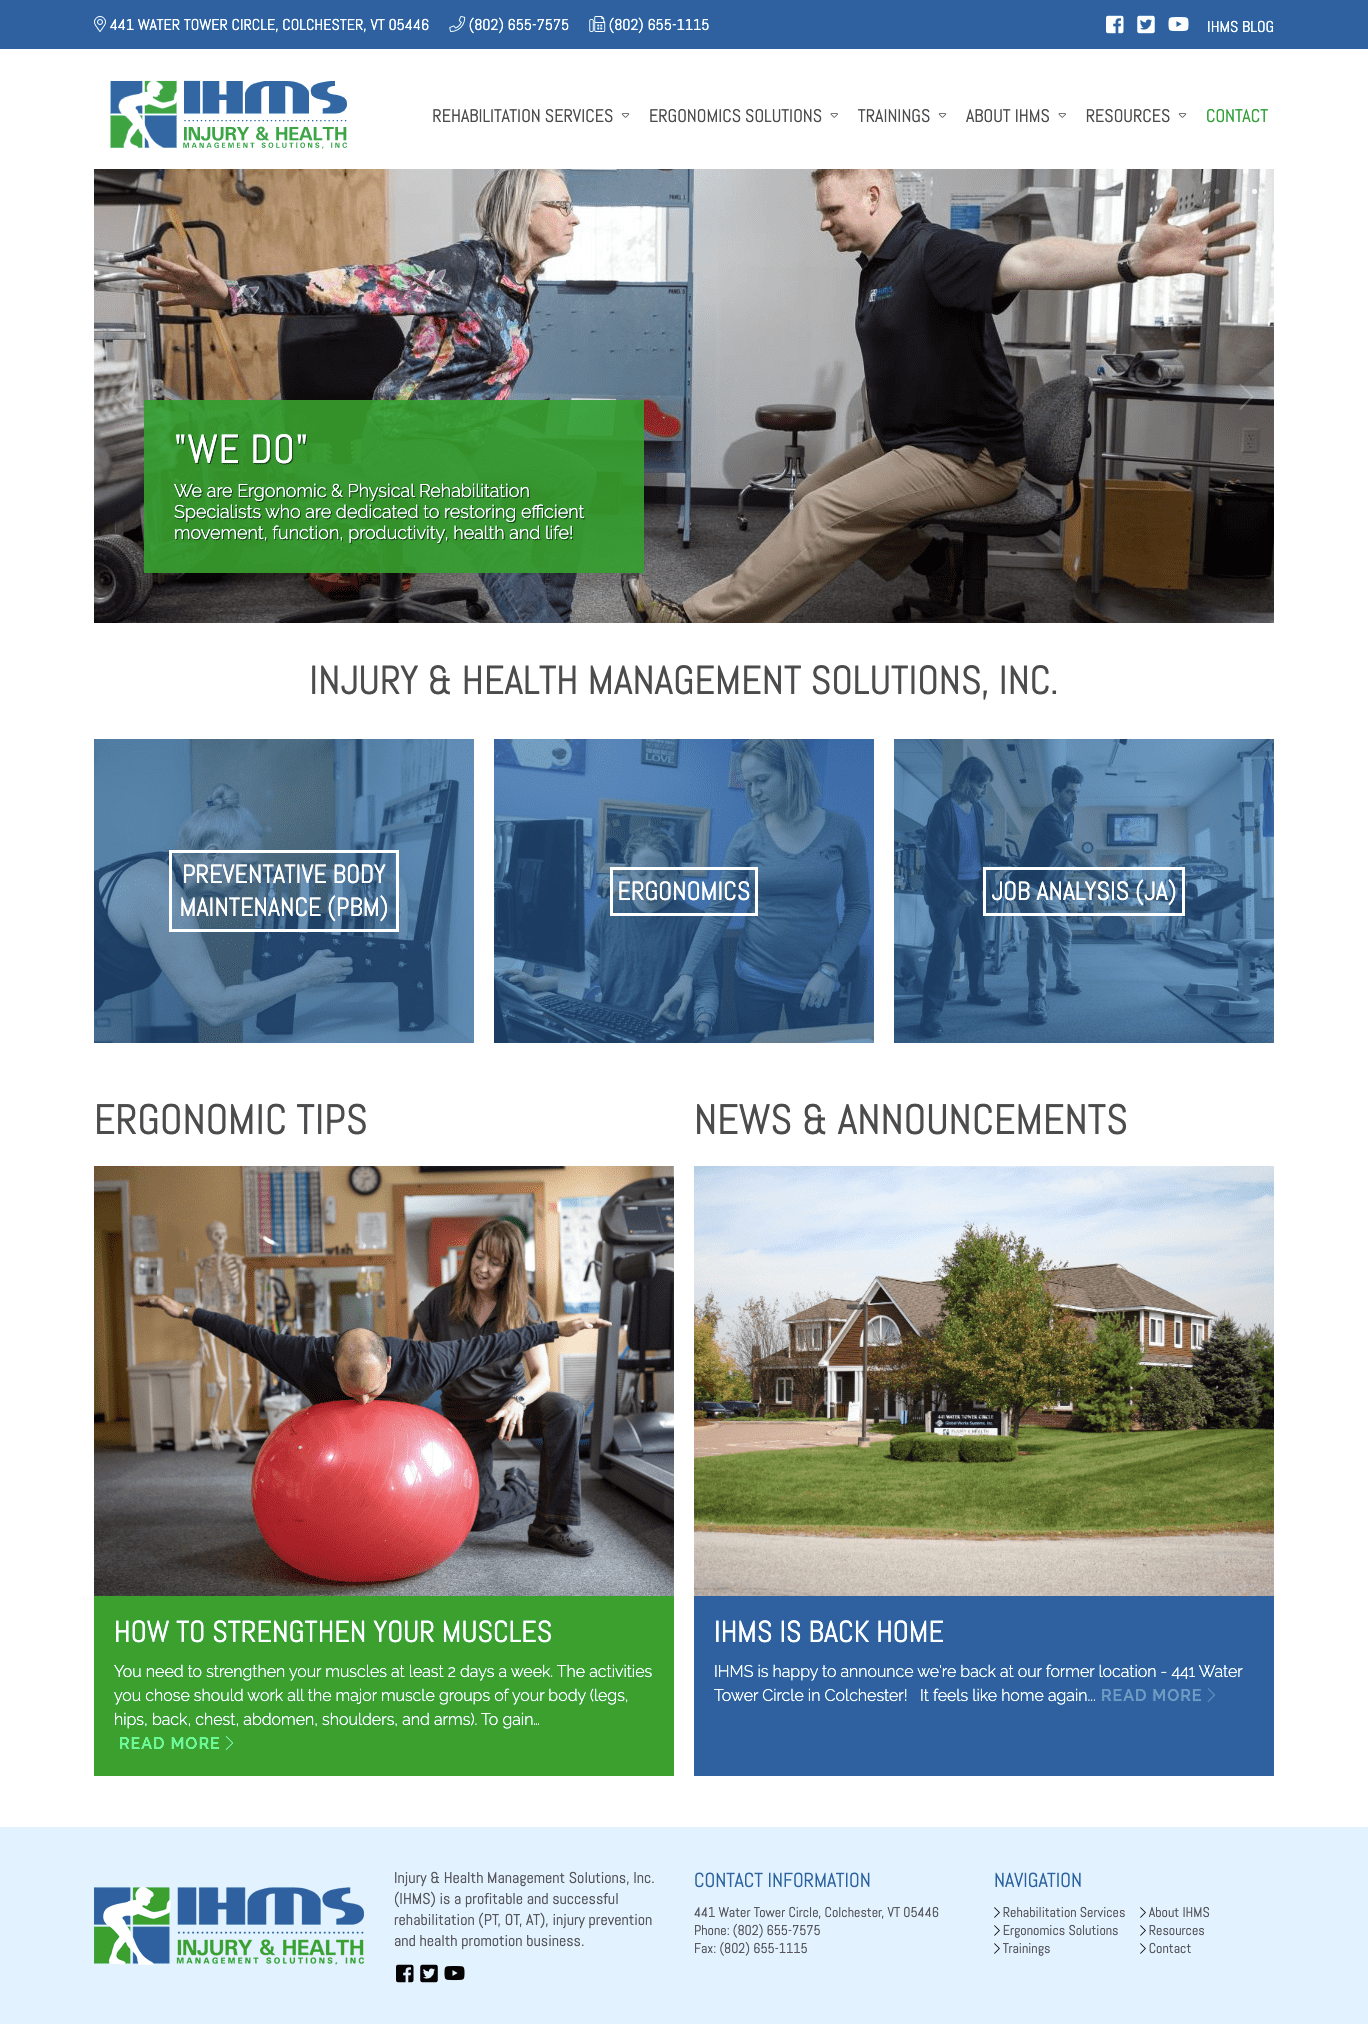 Injury & Health Management Solutions